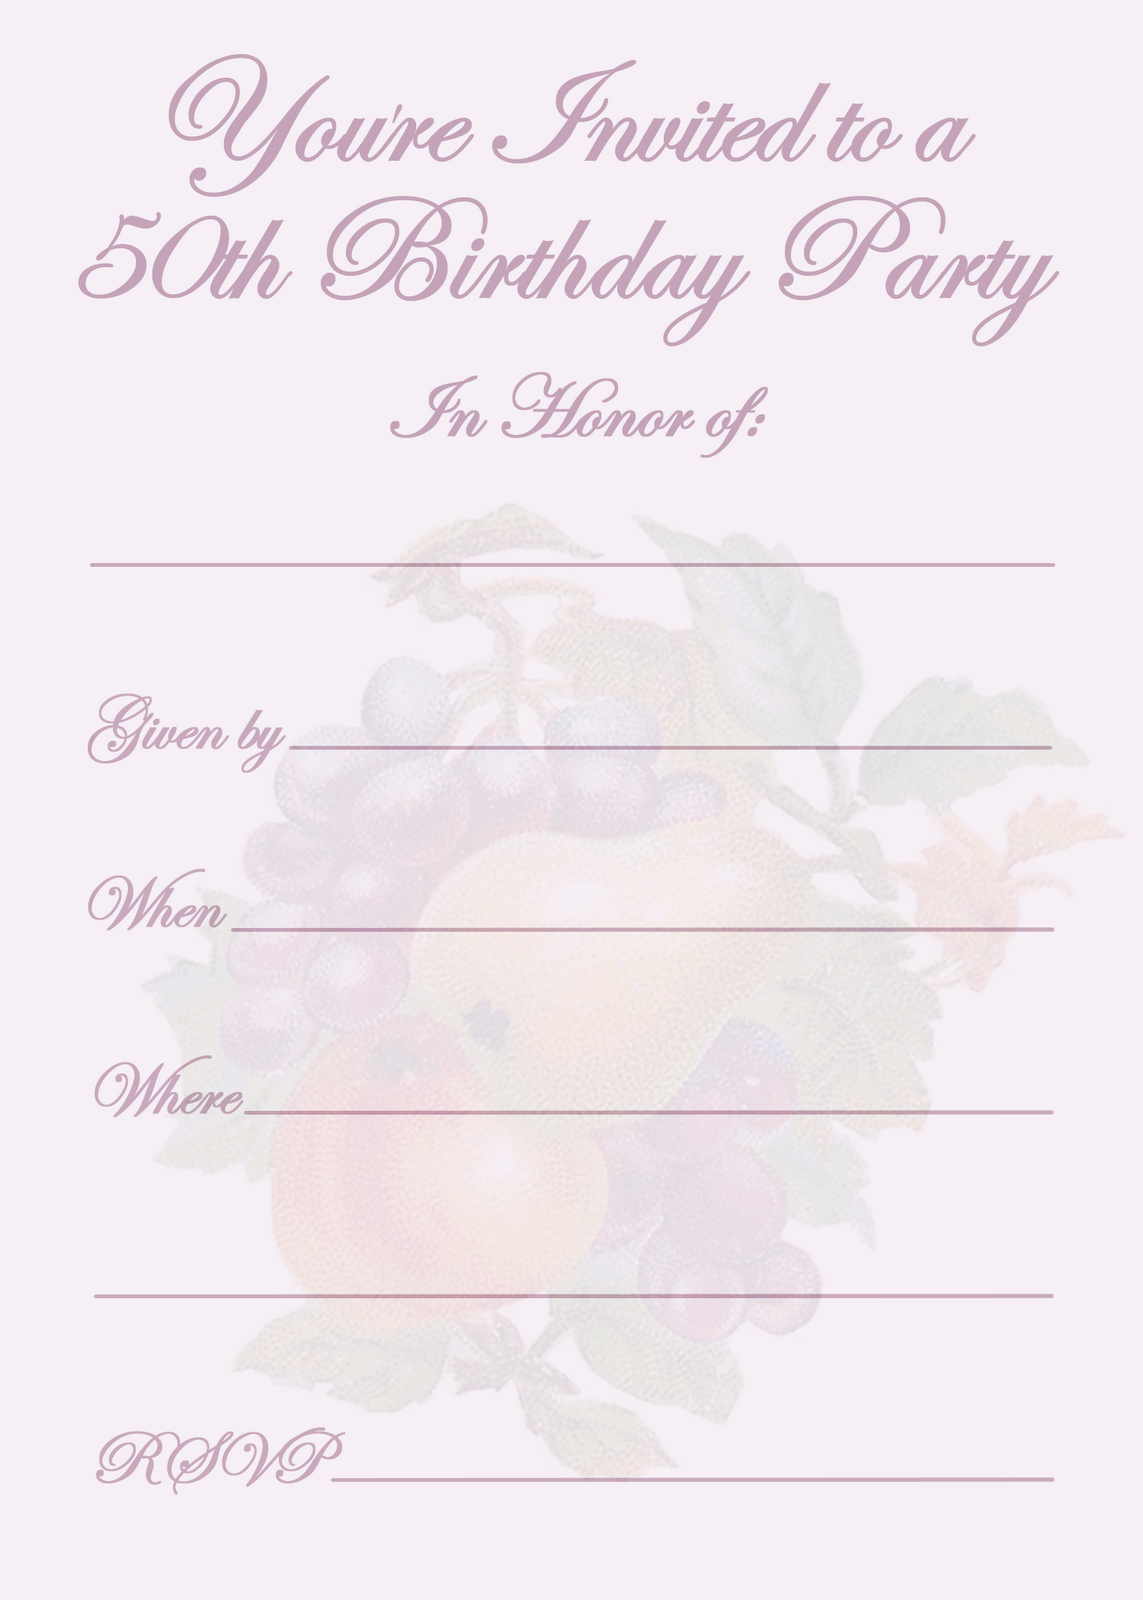 Online Printable 50th Birthday Invitations